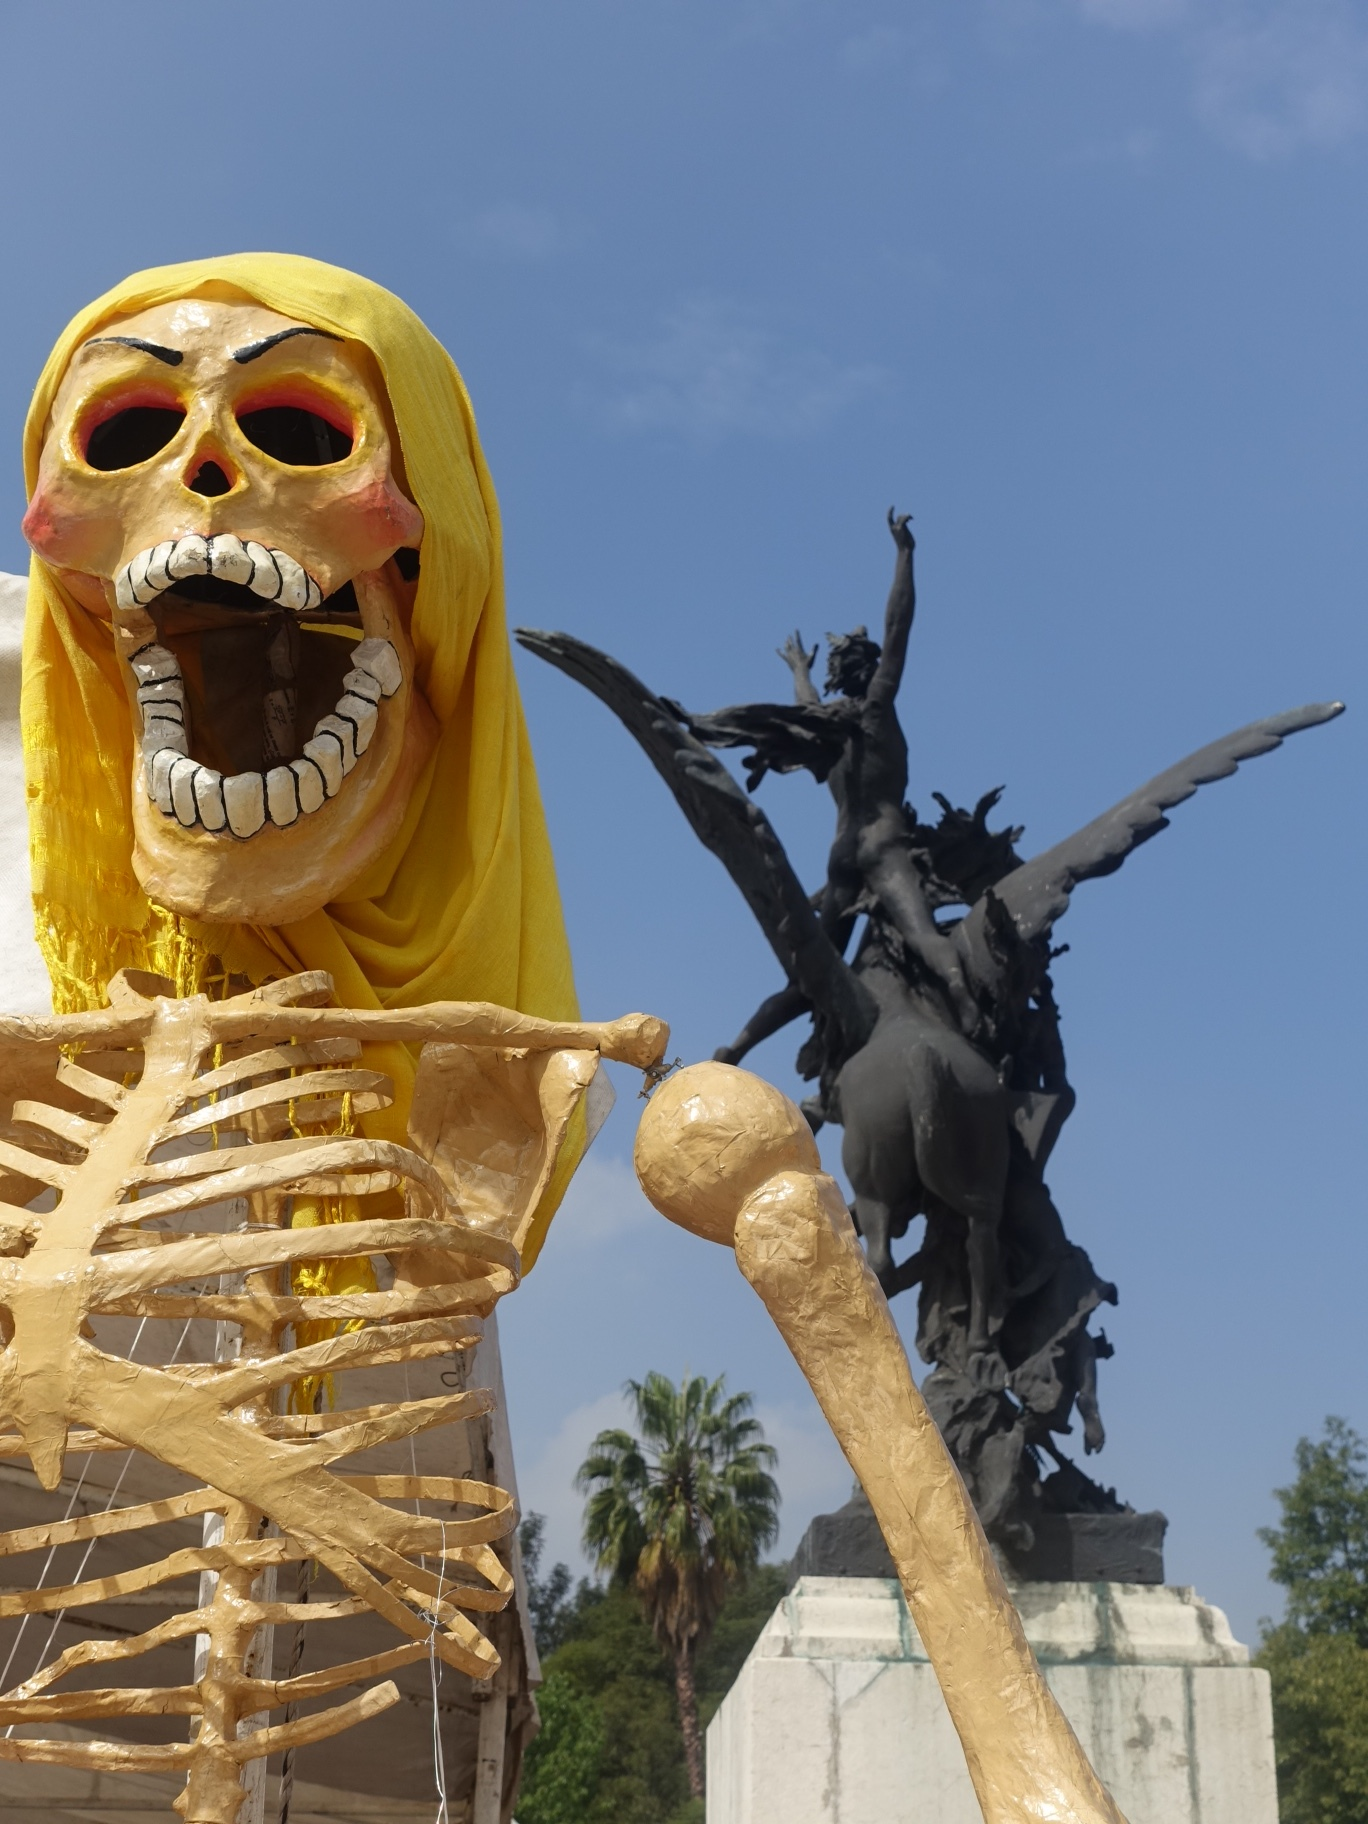 The juxtaposition of the colourful and temporary Day of the Dead skeleton figure with the permanent,dark winged-horse and figure statue captured my eye. Located in the plaza in front of Mexico City's Bellas Artes concert hall.